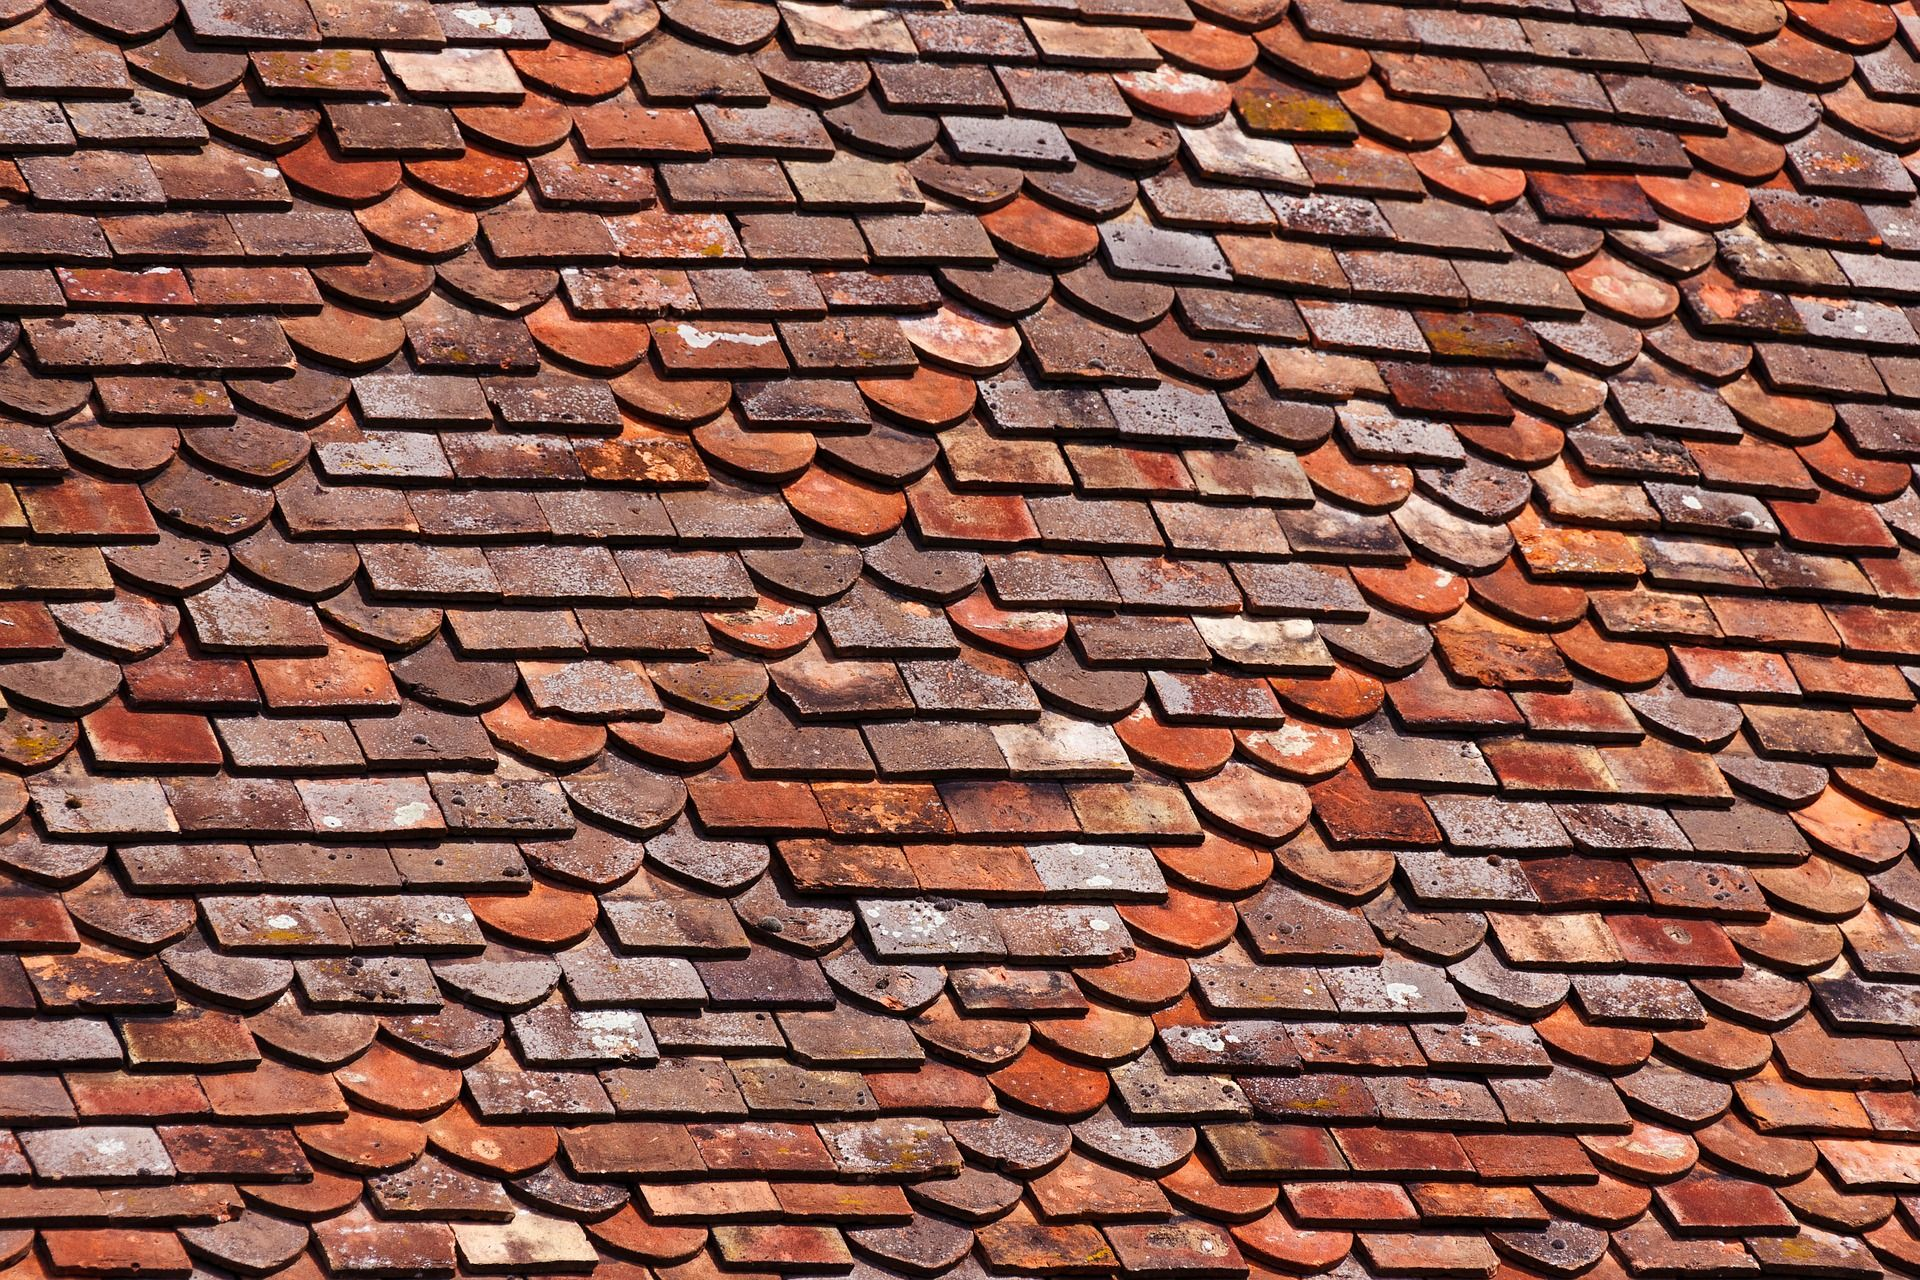 Roof Tiles Background Sixty Eight Photo Texture Building Ceramic Clay Construction Detail Exterior Home House Industry Material Plaque Sous Tuile Tuile Tuiles